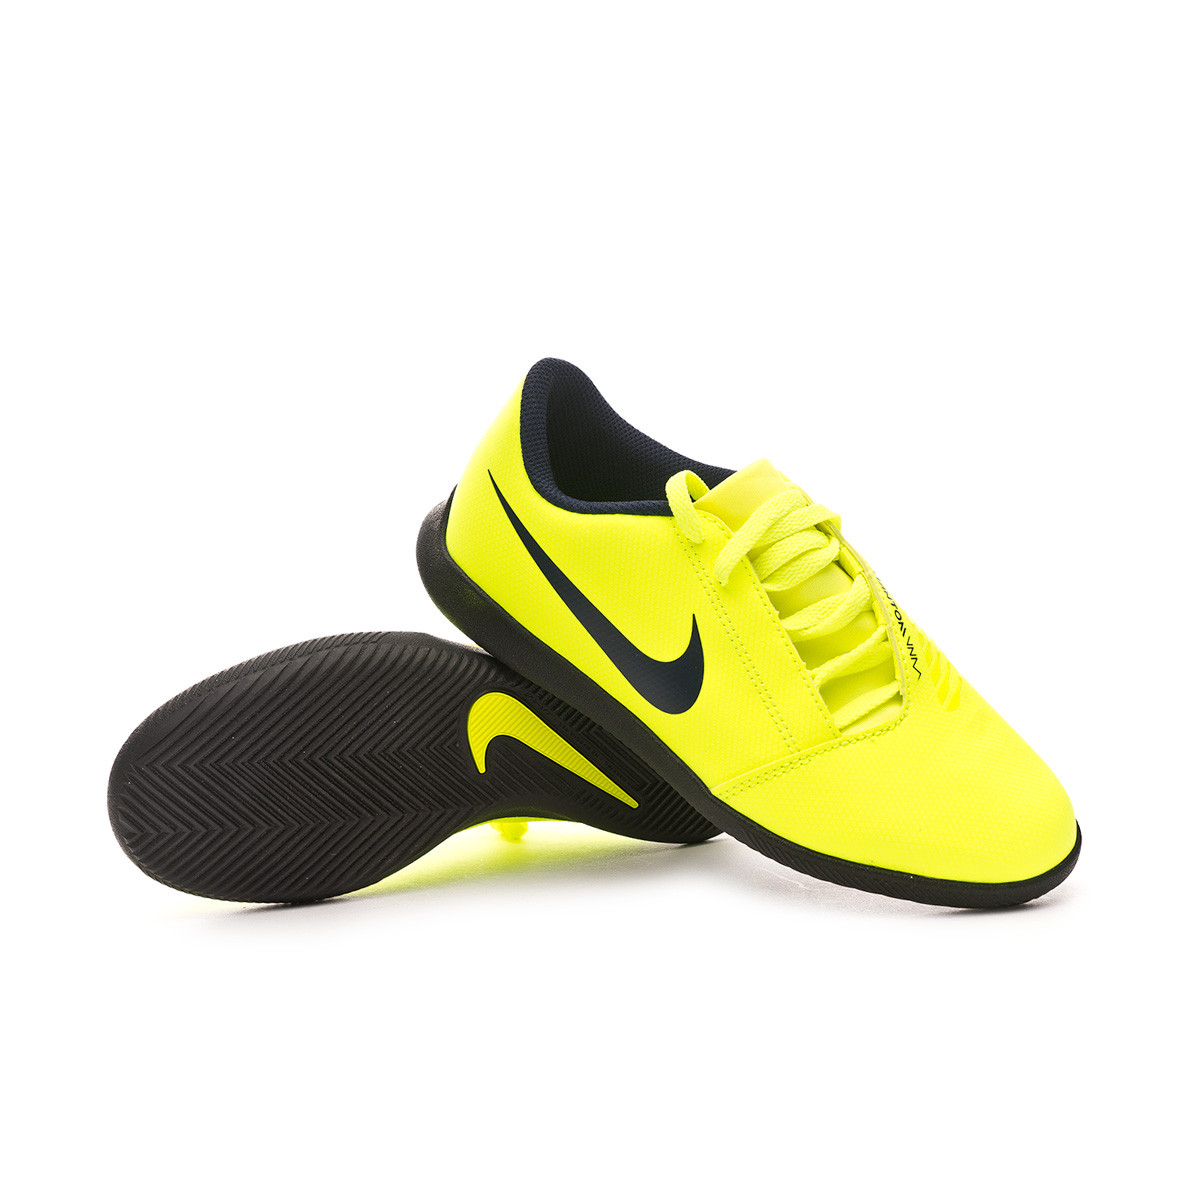 CHUTEIRA FUTSAL NIKE PHANTOM VENOM CLUB IC